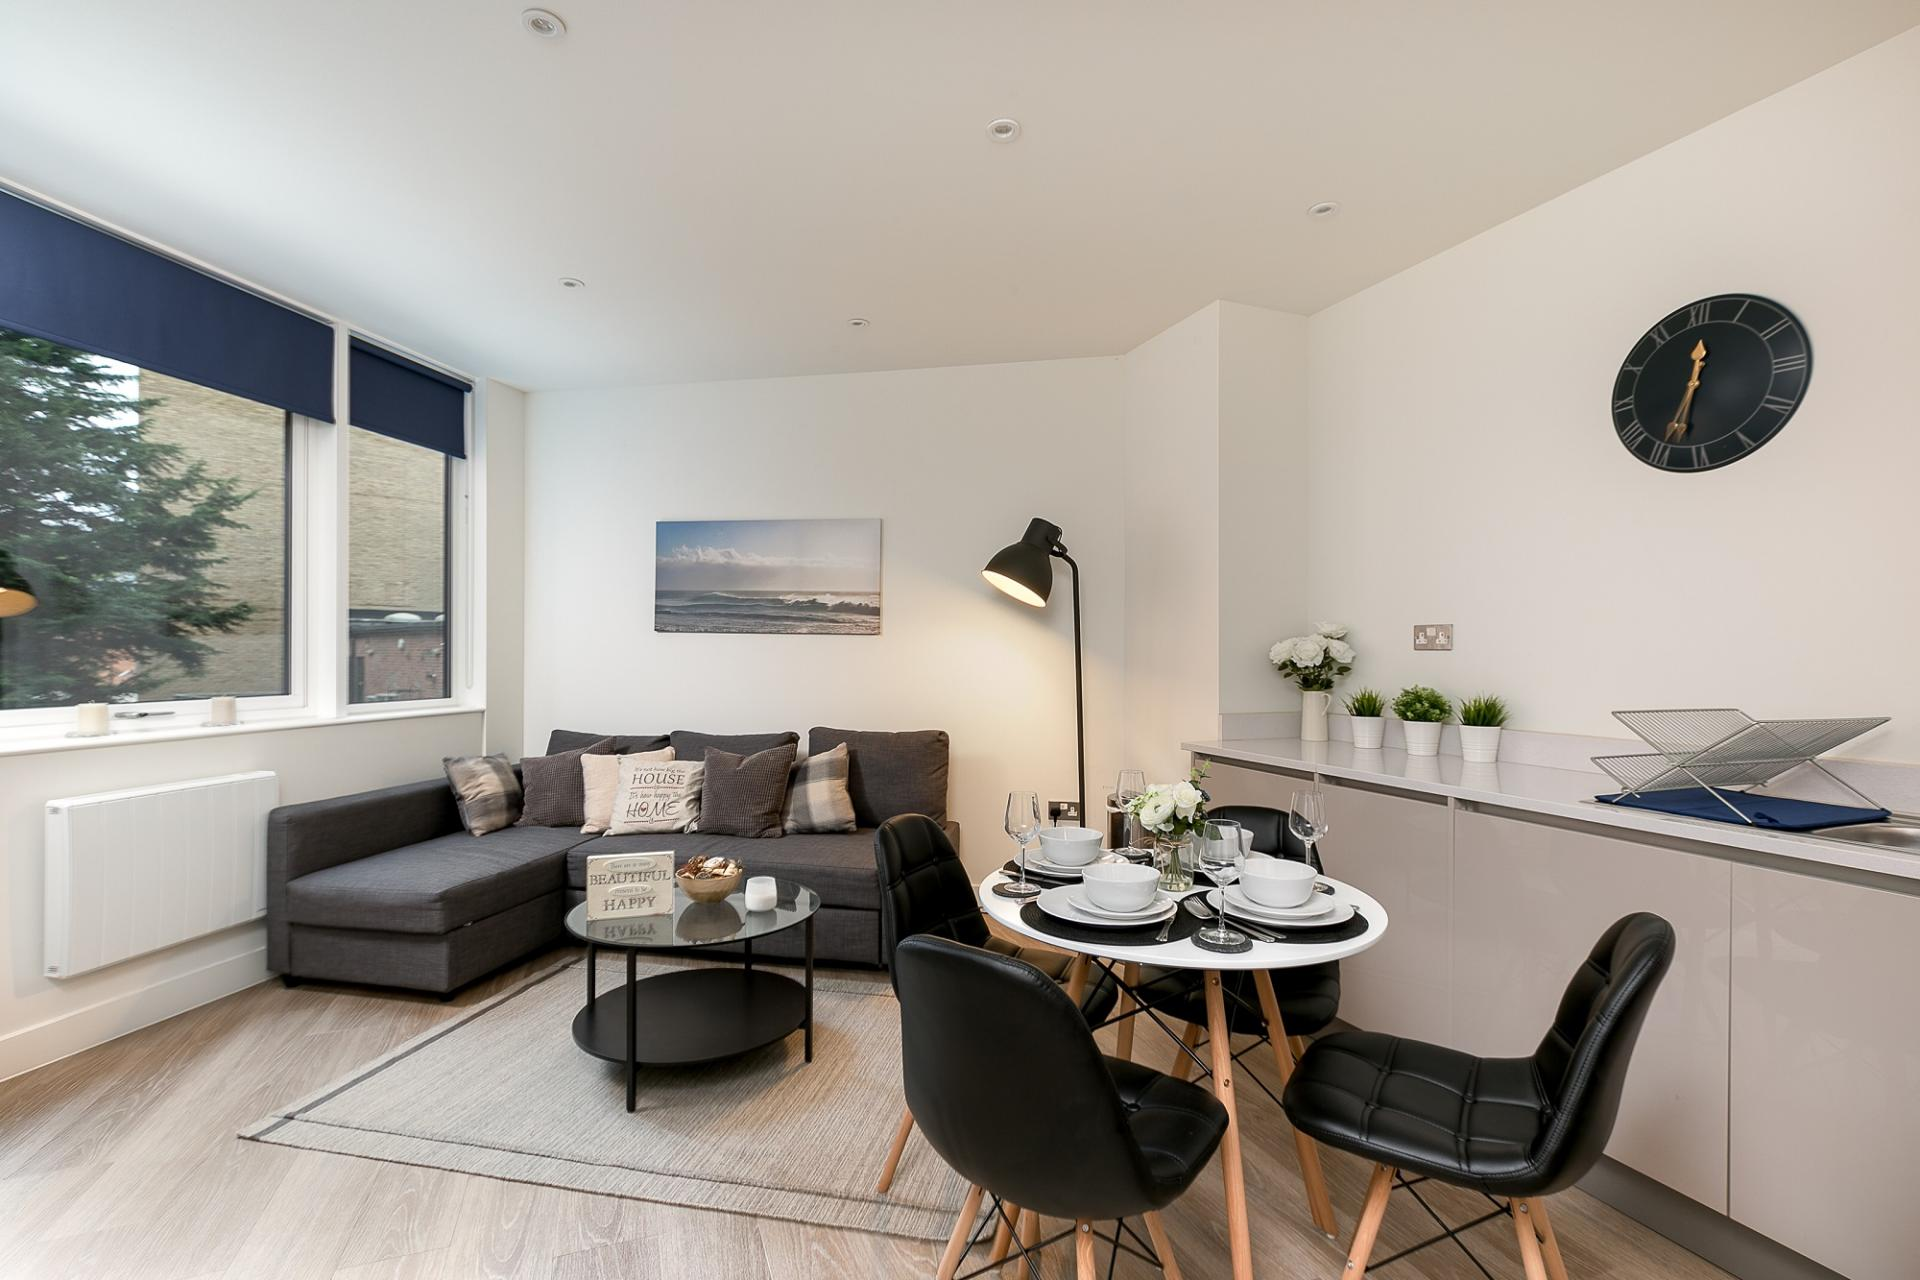 Lounge at Kings Reach Apartment, Centre, Reading - Citybase Apartments